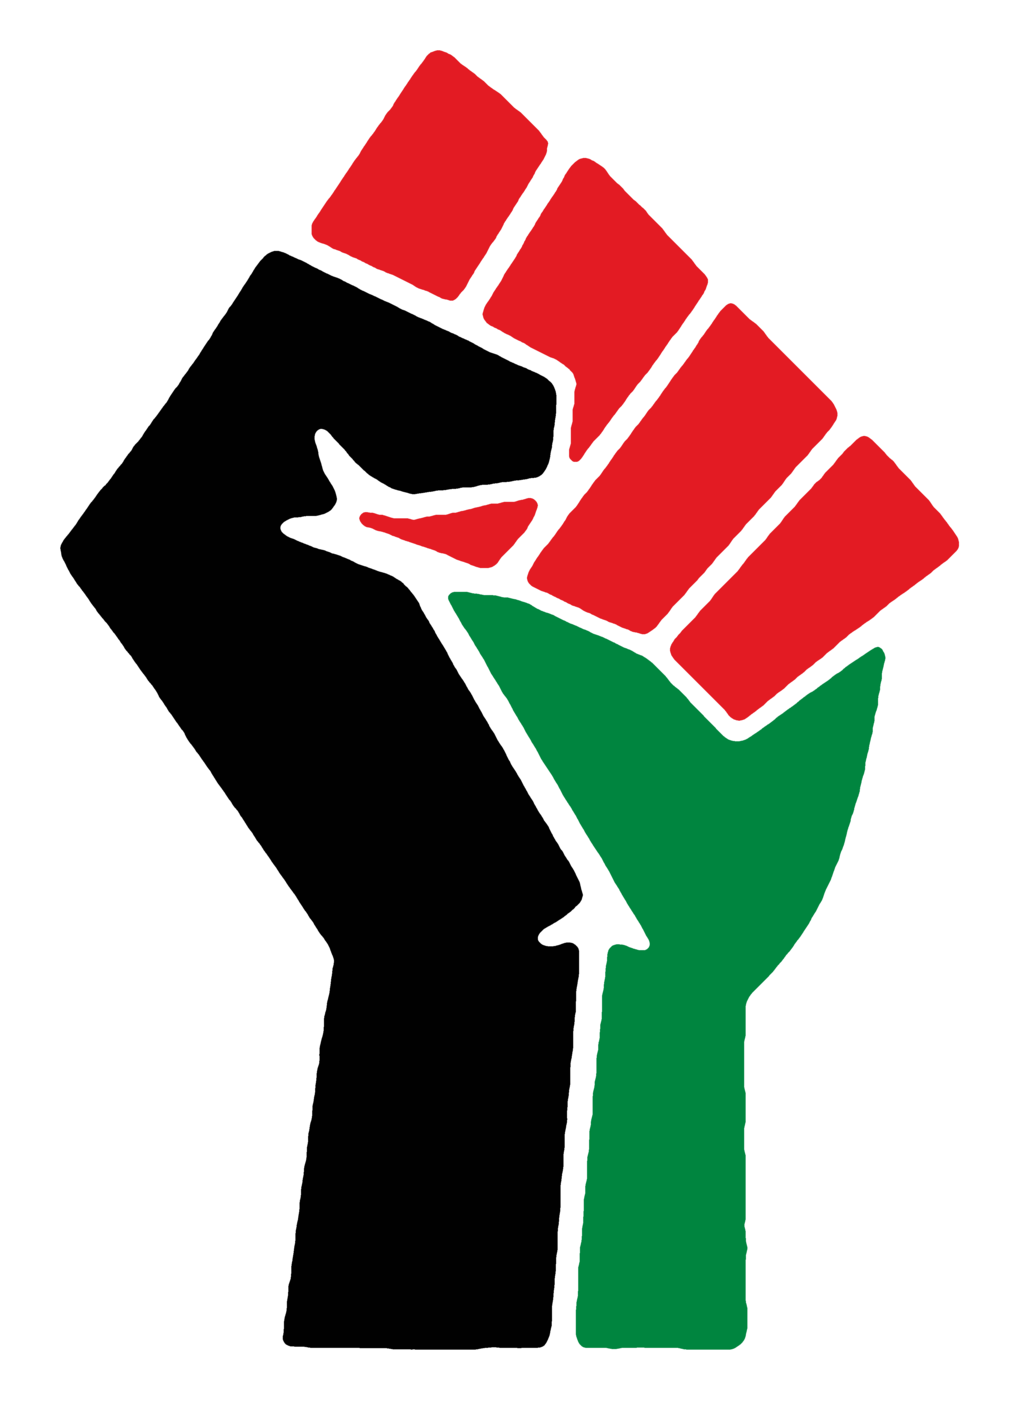 red black green fist.png